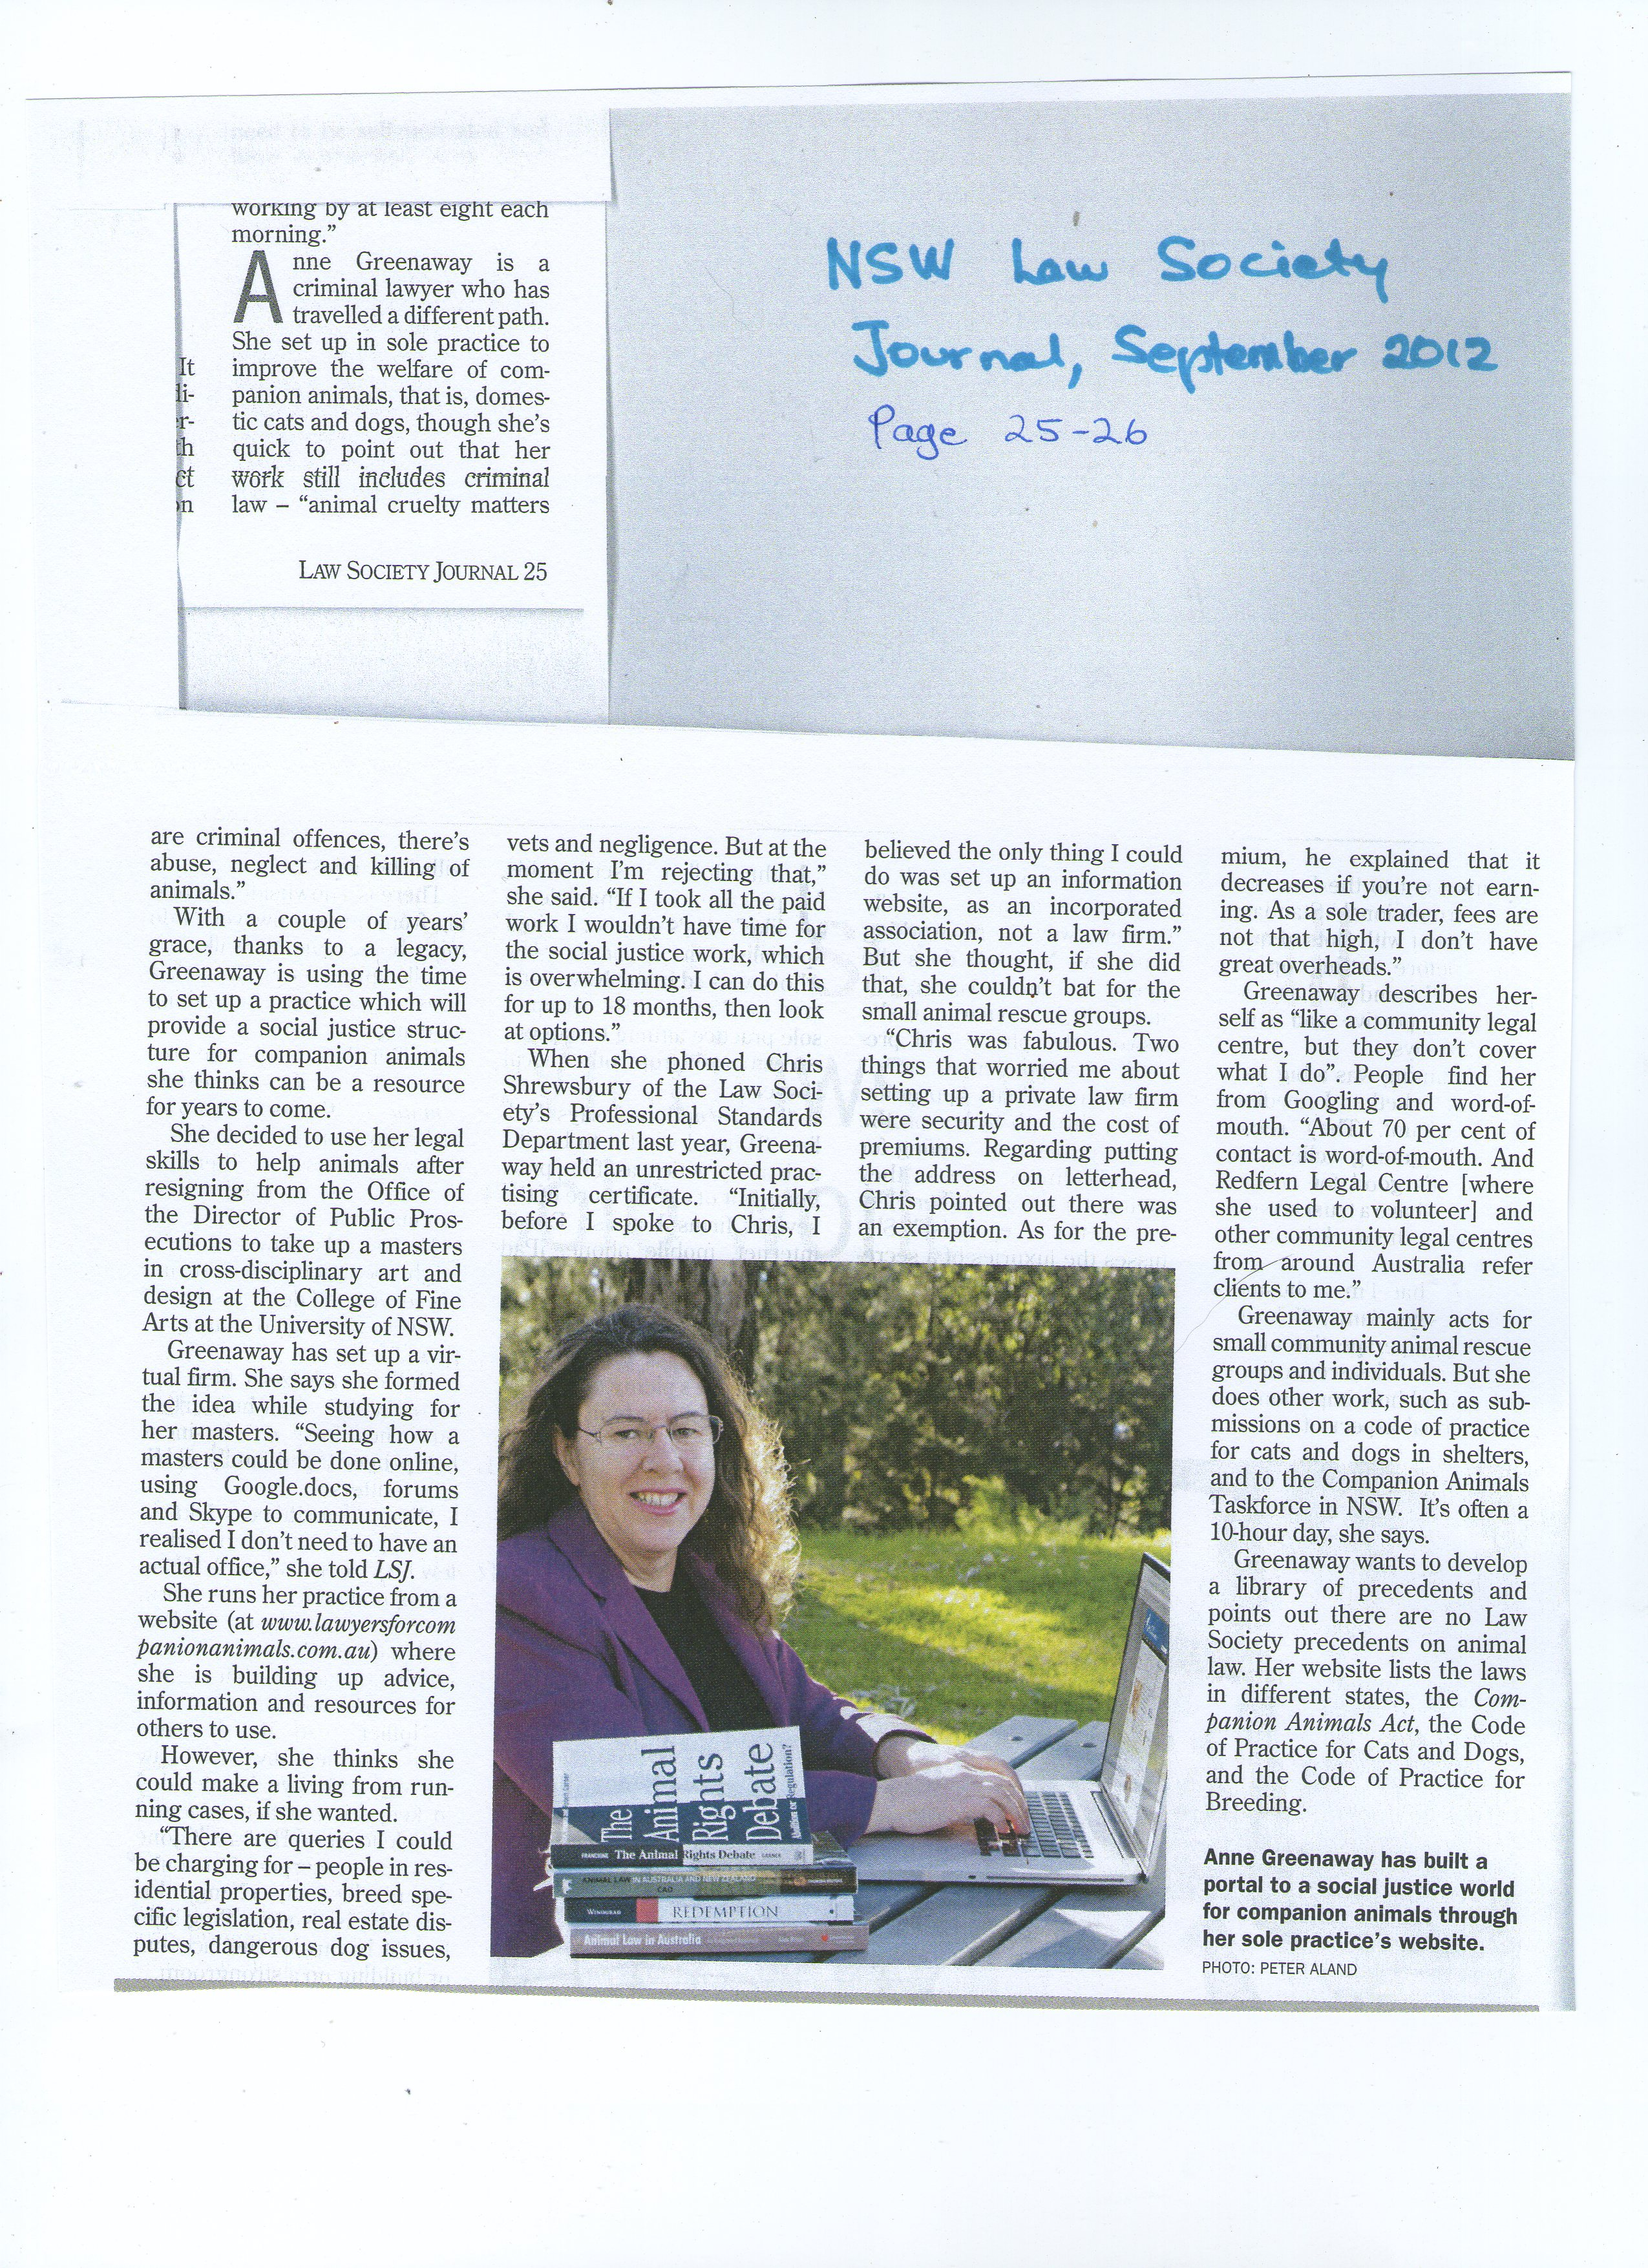 NSW Law Society Journal article, September 2012